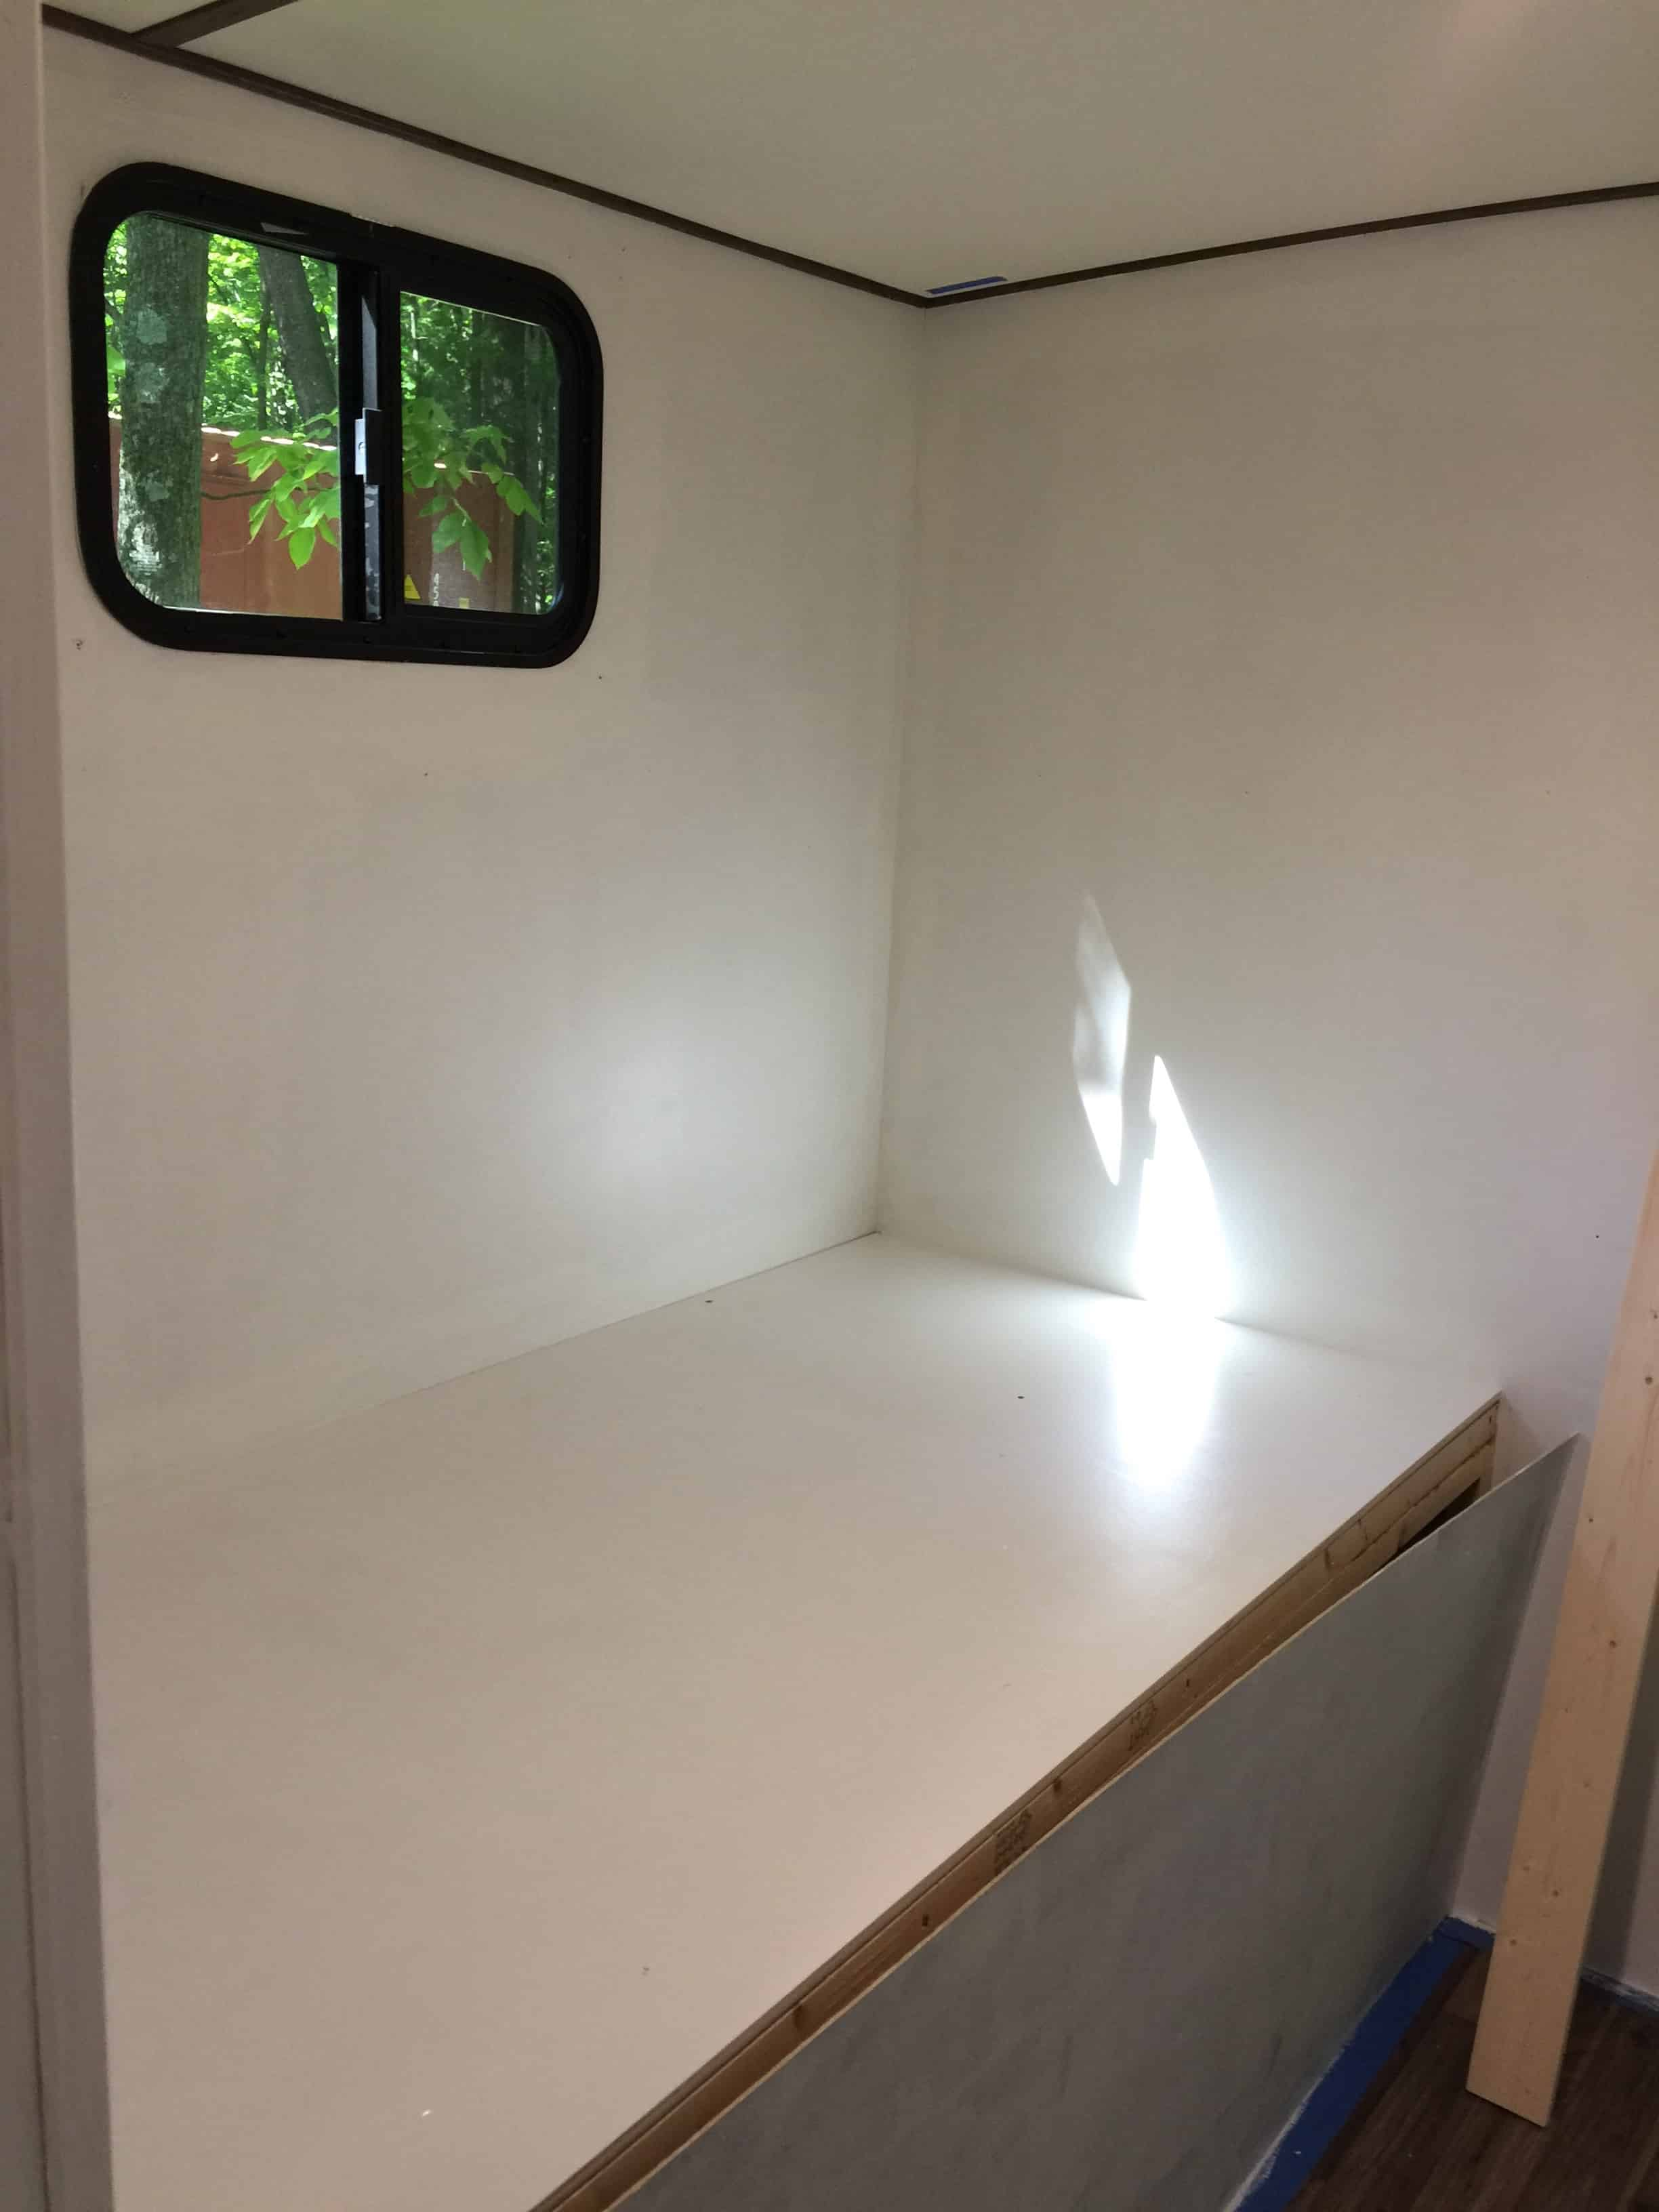 rv remodel cabinet build clean slate open bunk area painted white ready for cabinets